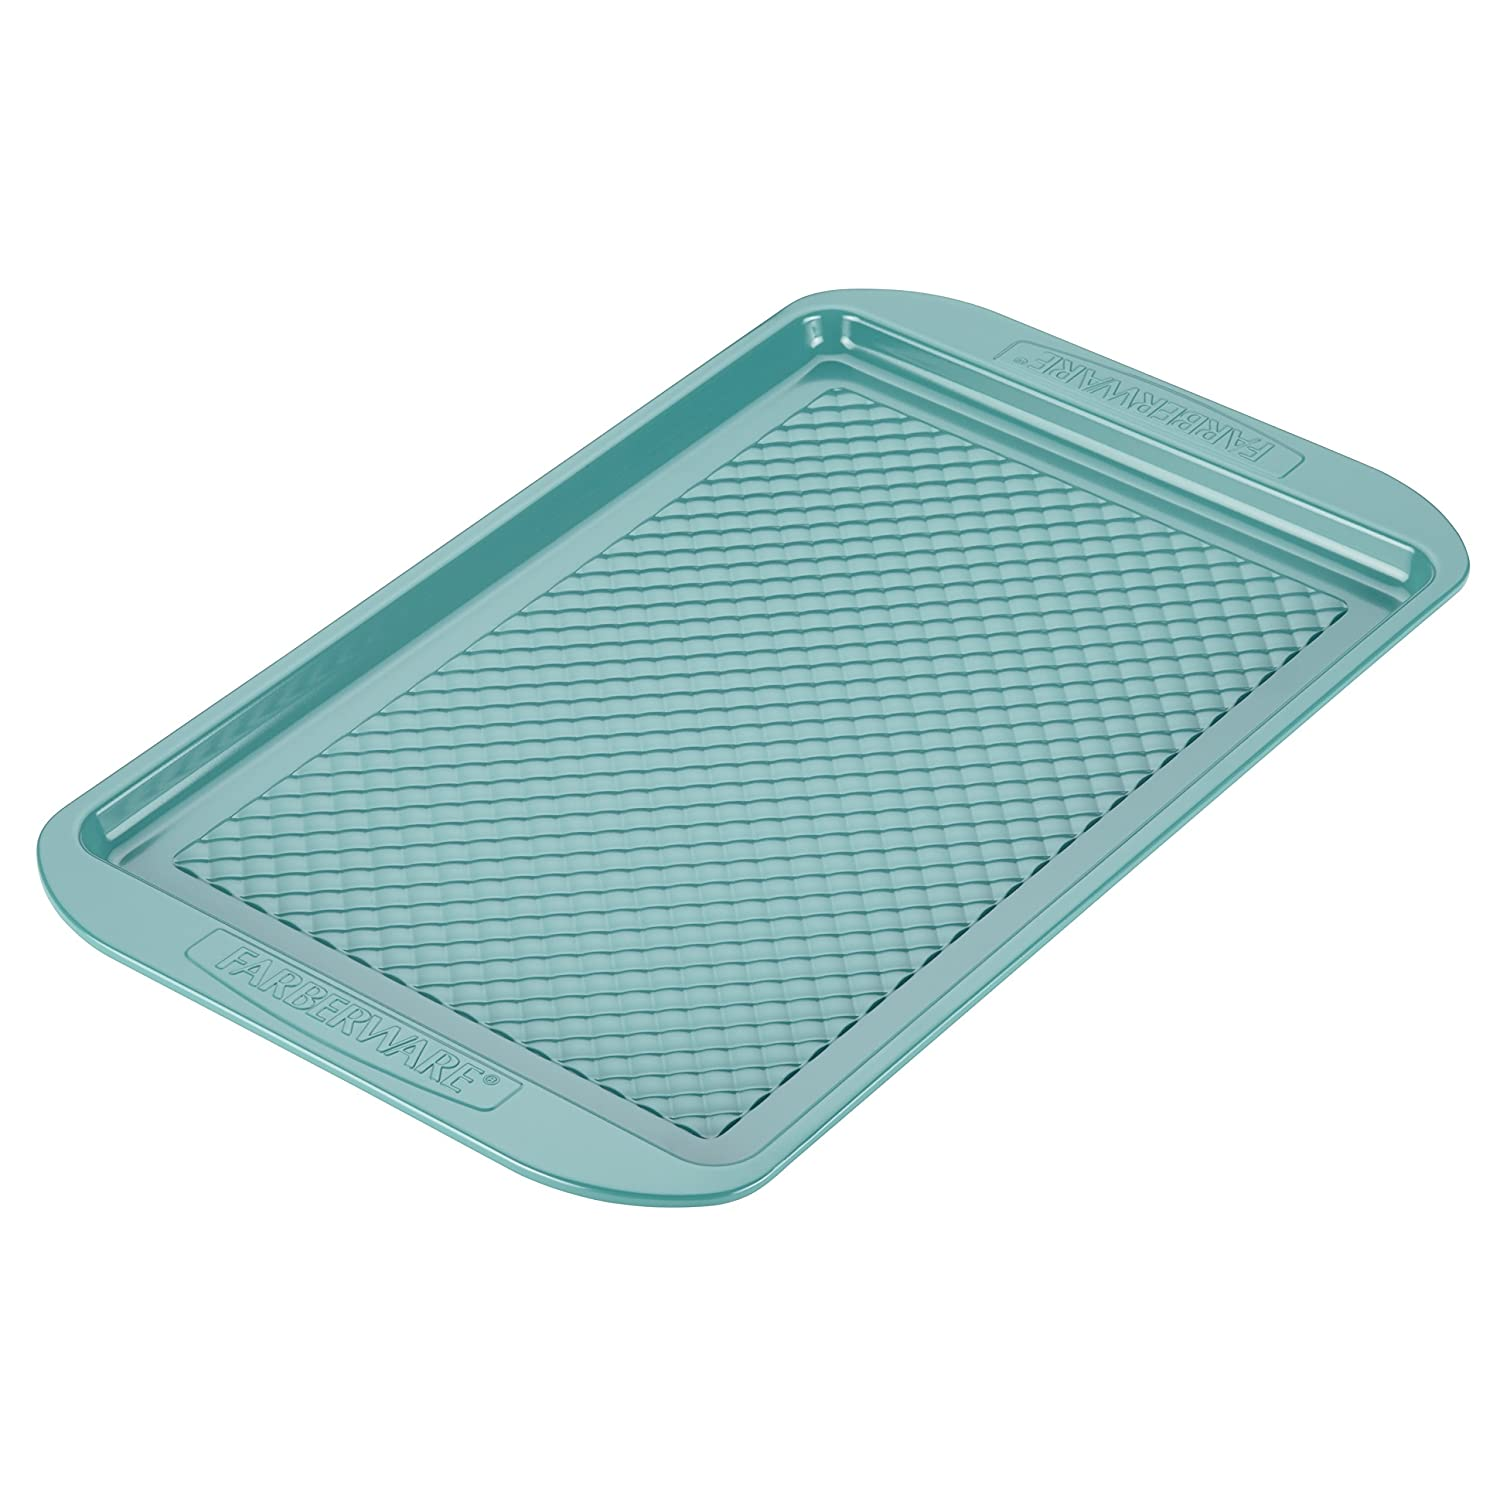 Farberware purECOok Hybrid Ceramic Nonstick Bakeware Baking Sheet & Cookie Pan, 10-Inch x 15-Inch, Aqua 46327